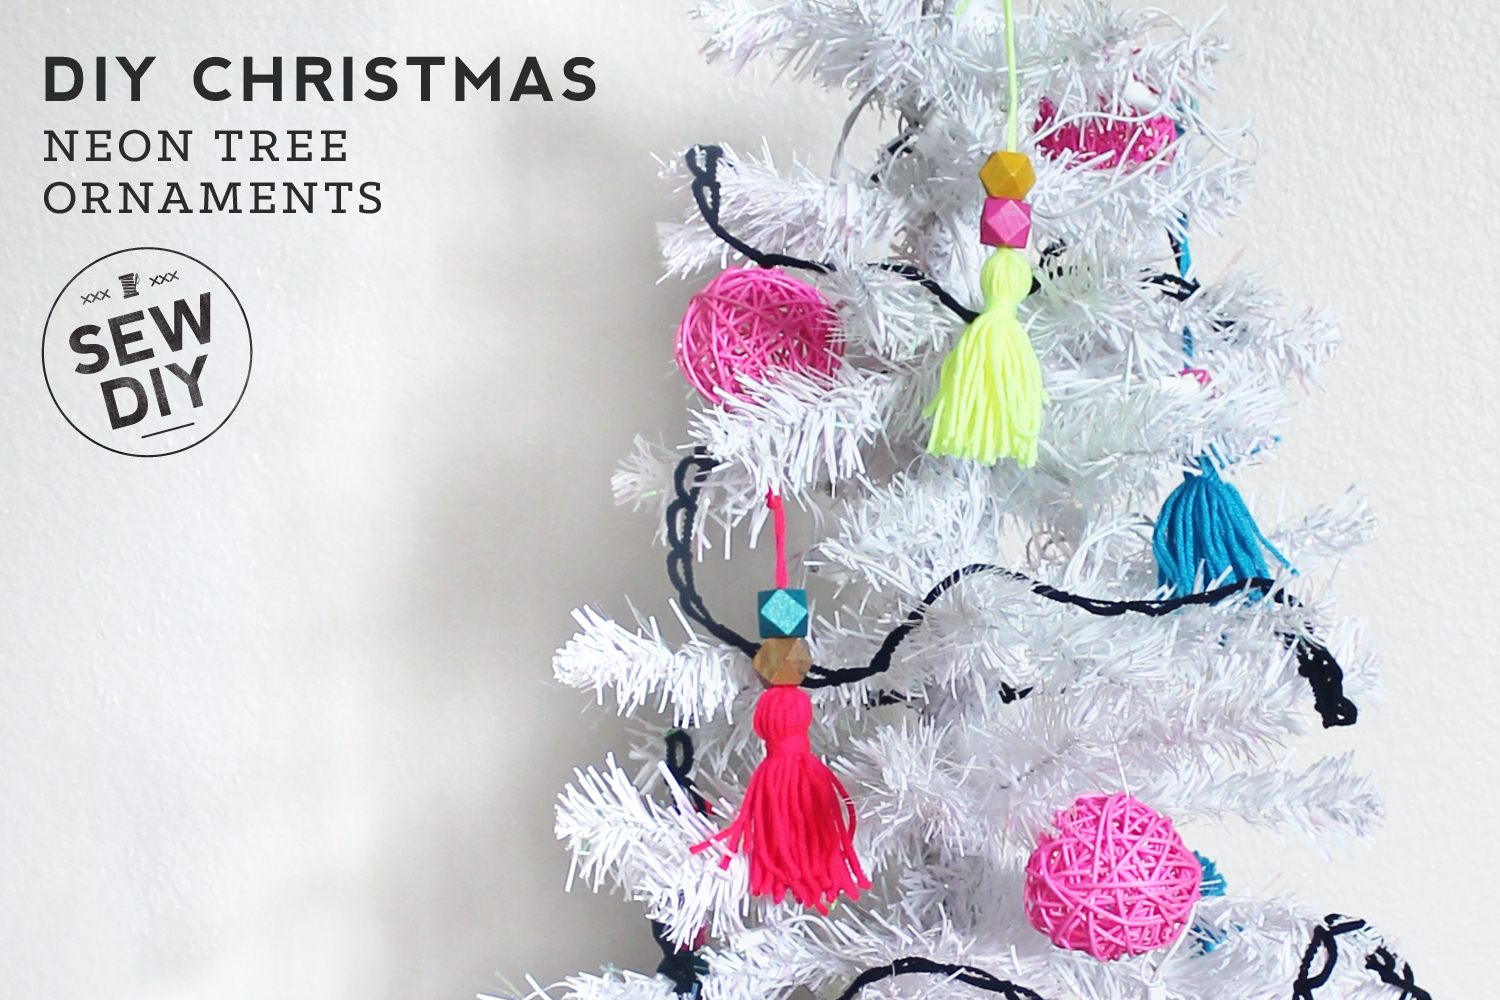 SEW DIY How to Decorate a Neon Christmas Tree